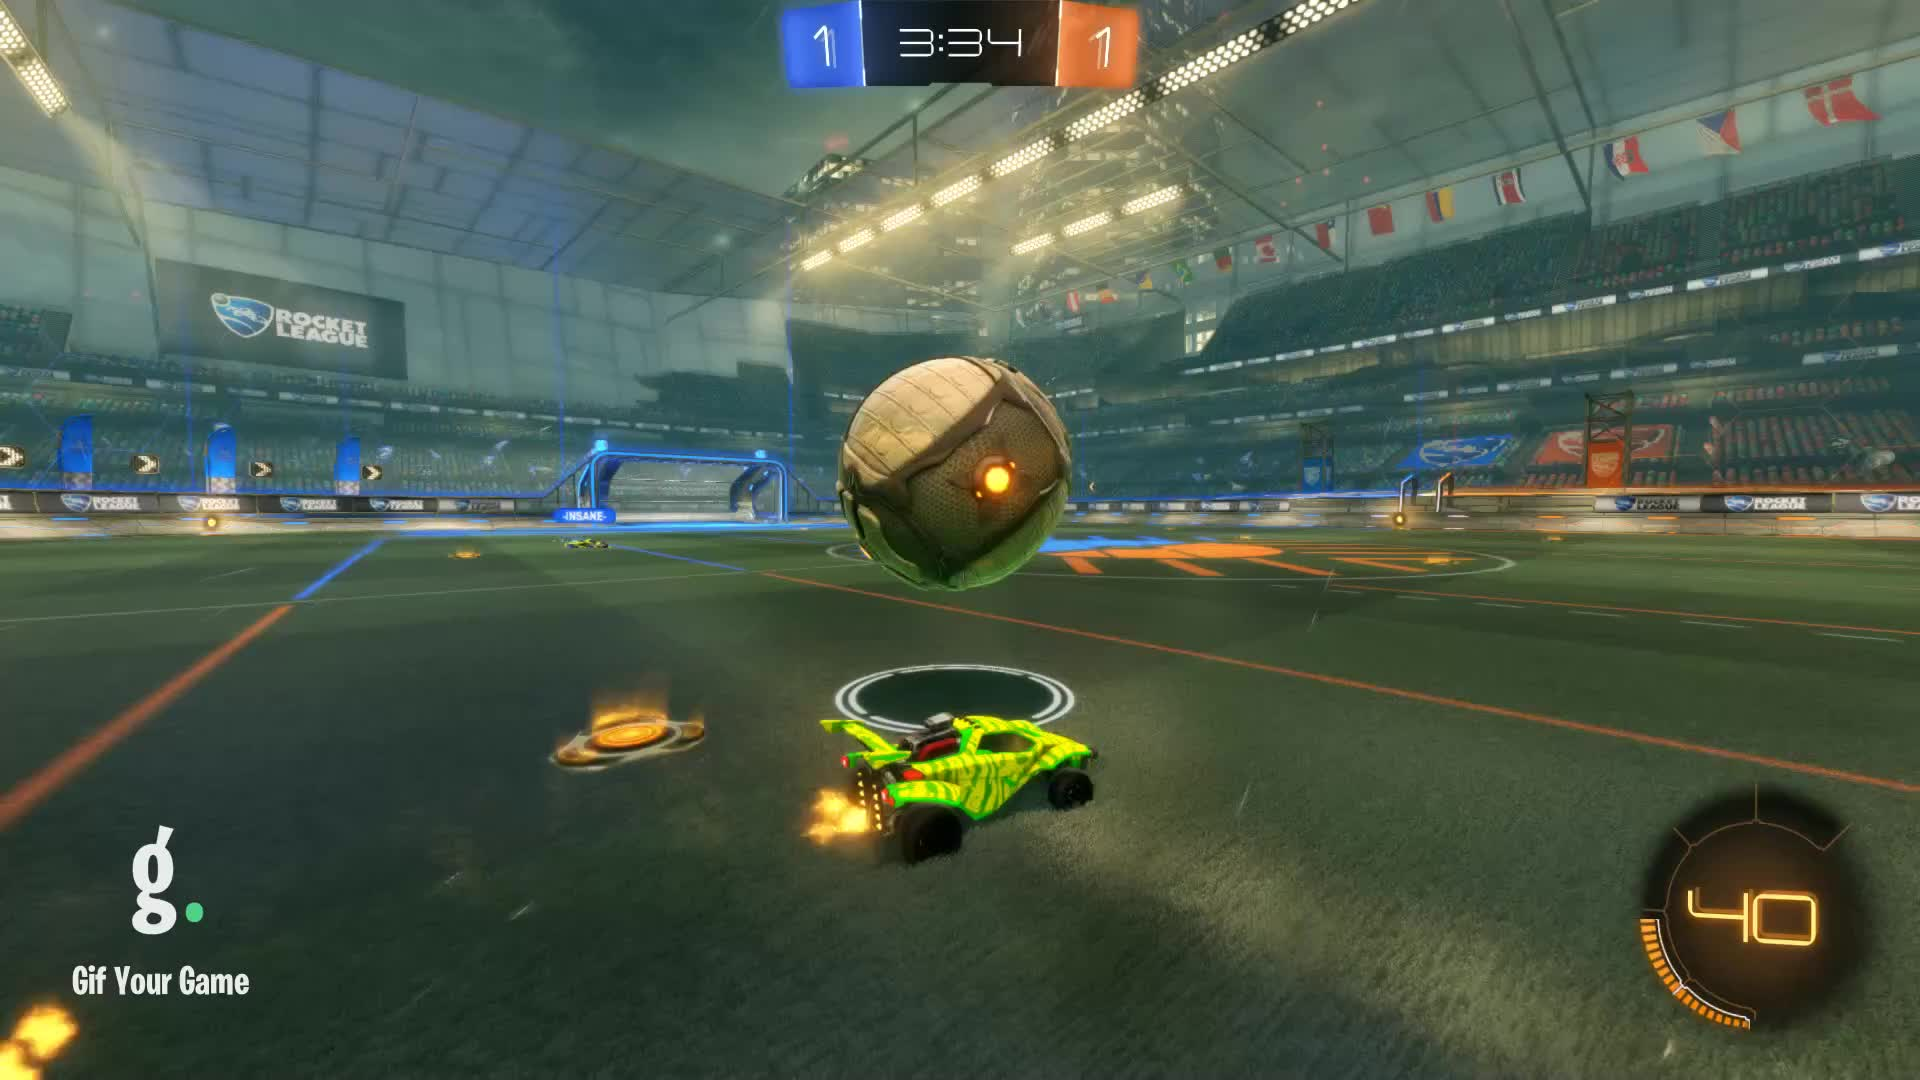 Gif Your Game, GifYourGame, Goal, Manuel Neuer, Rocket League, RocketLeague, Goal 3: Manuel Neuer GIFs